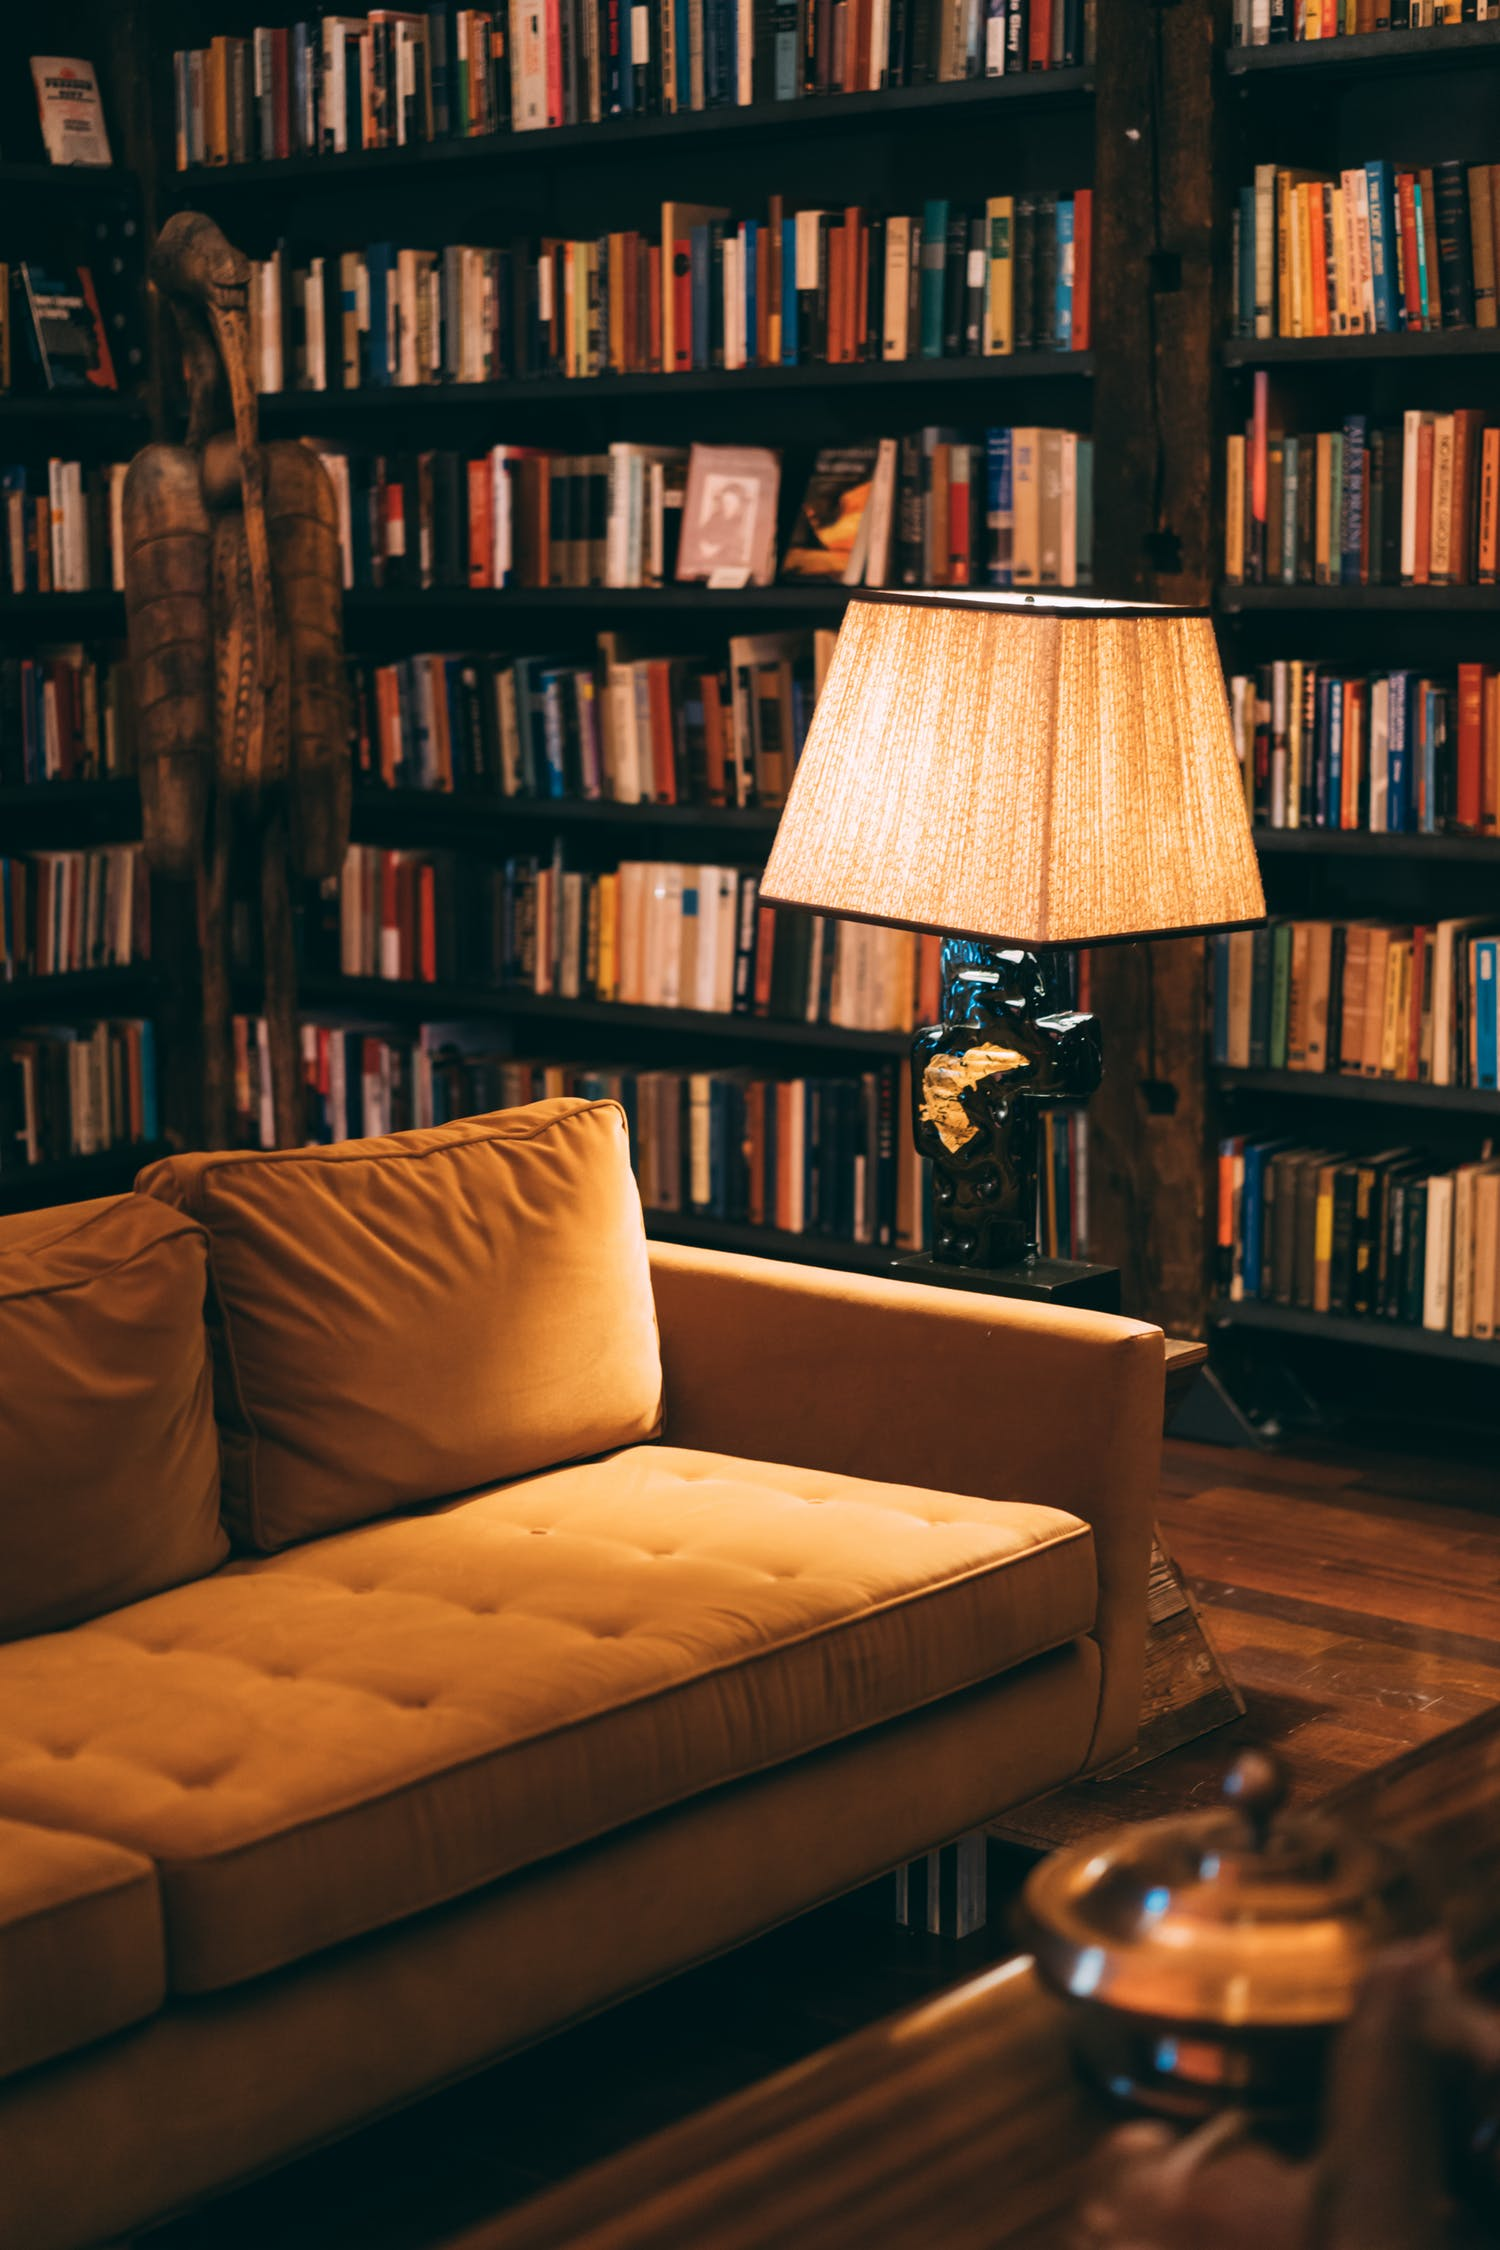 Cozy reading nook on couch with lamp and bookshelves